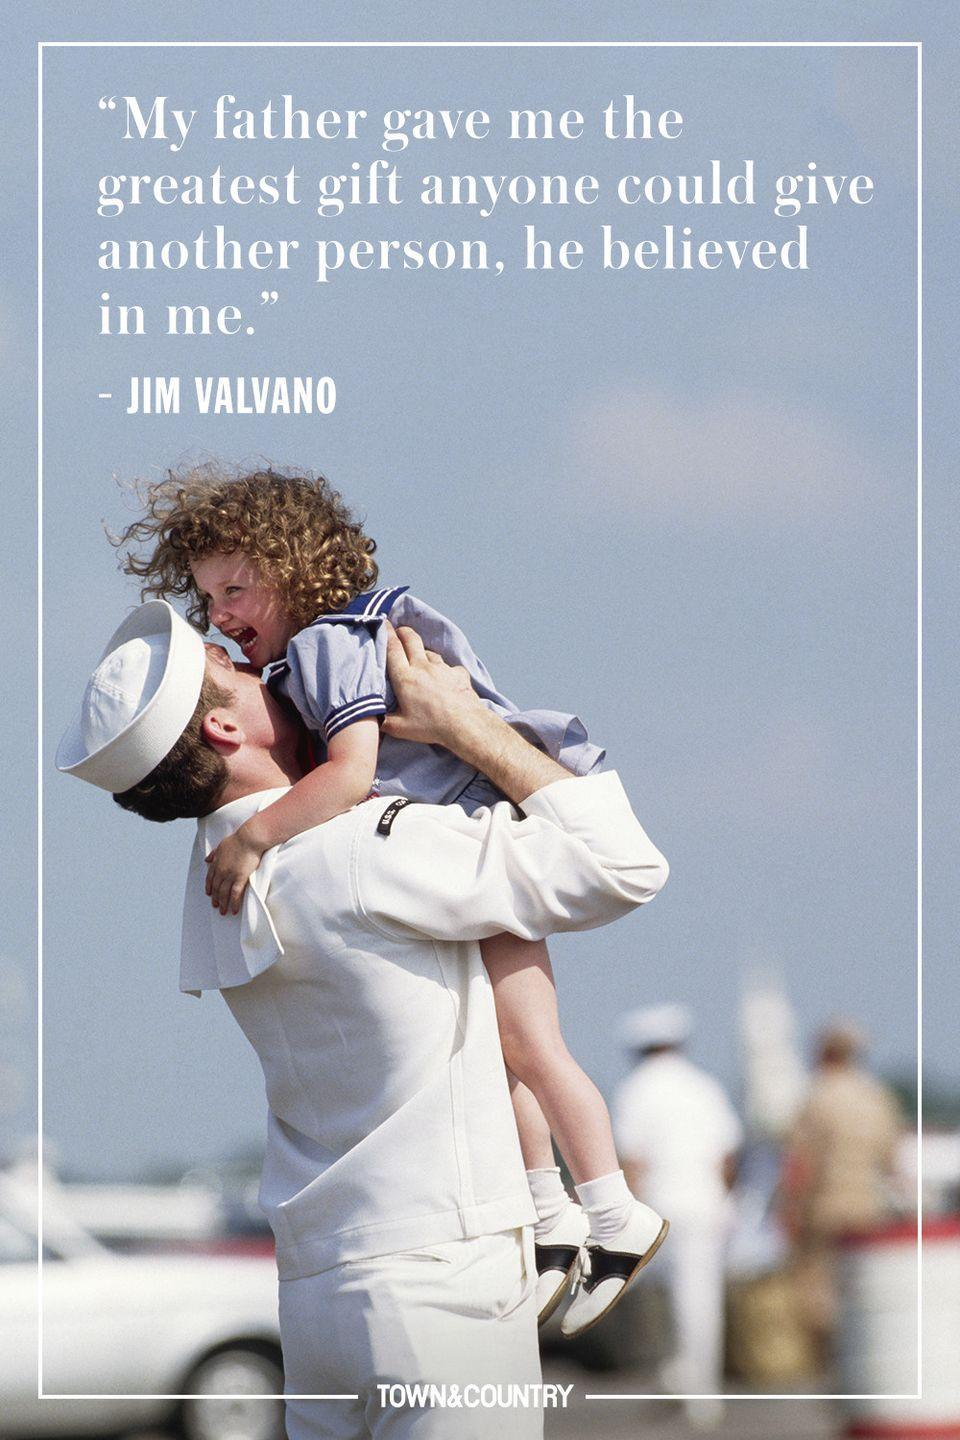 "<p>""My father gave me the greatest gift anyone could give another person, he believed in me.""</p><p>- Jim Valvano</p>"